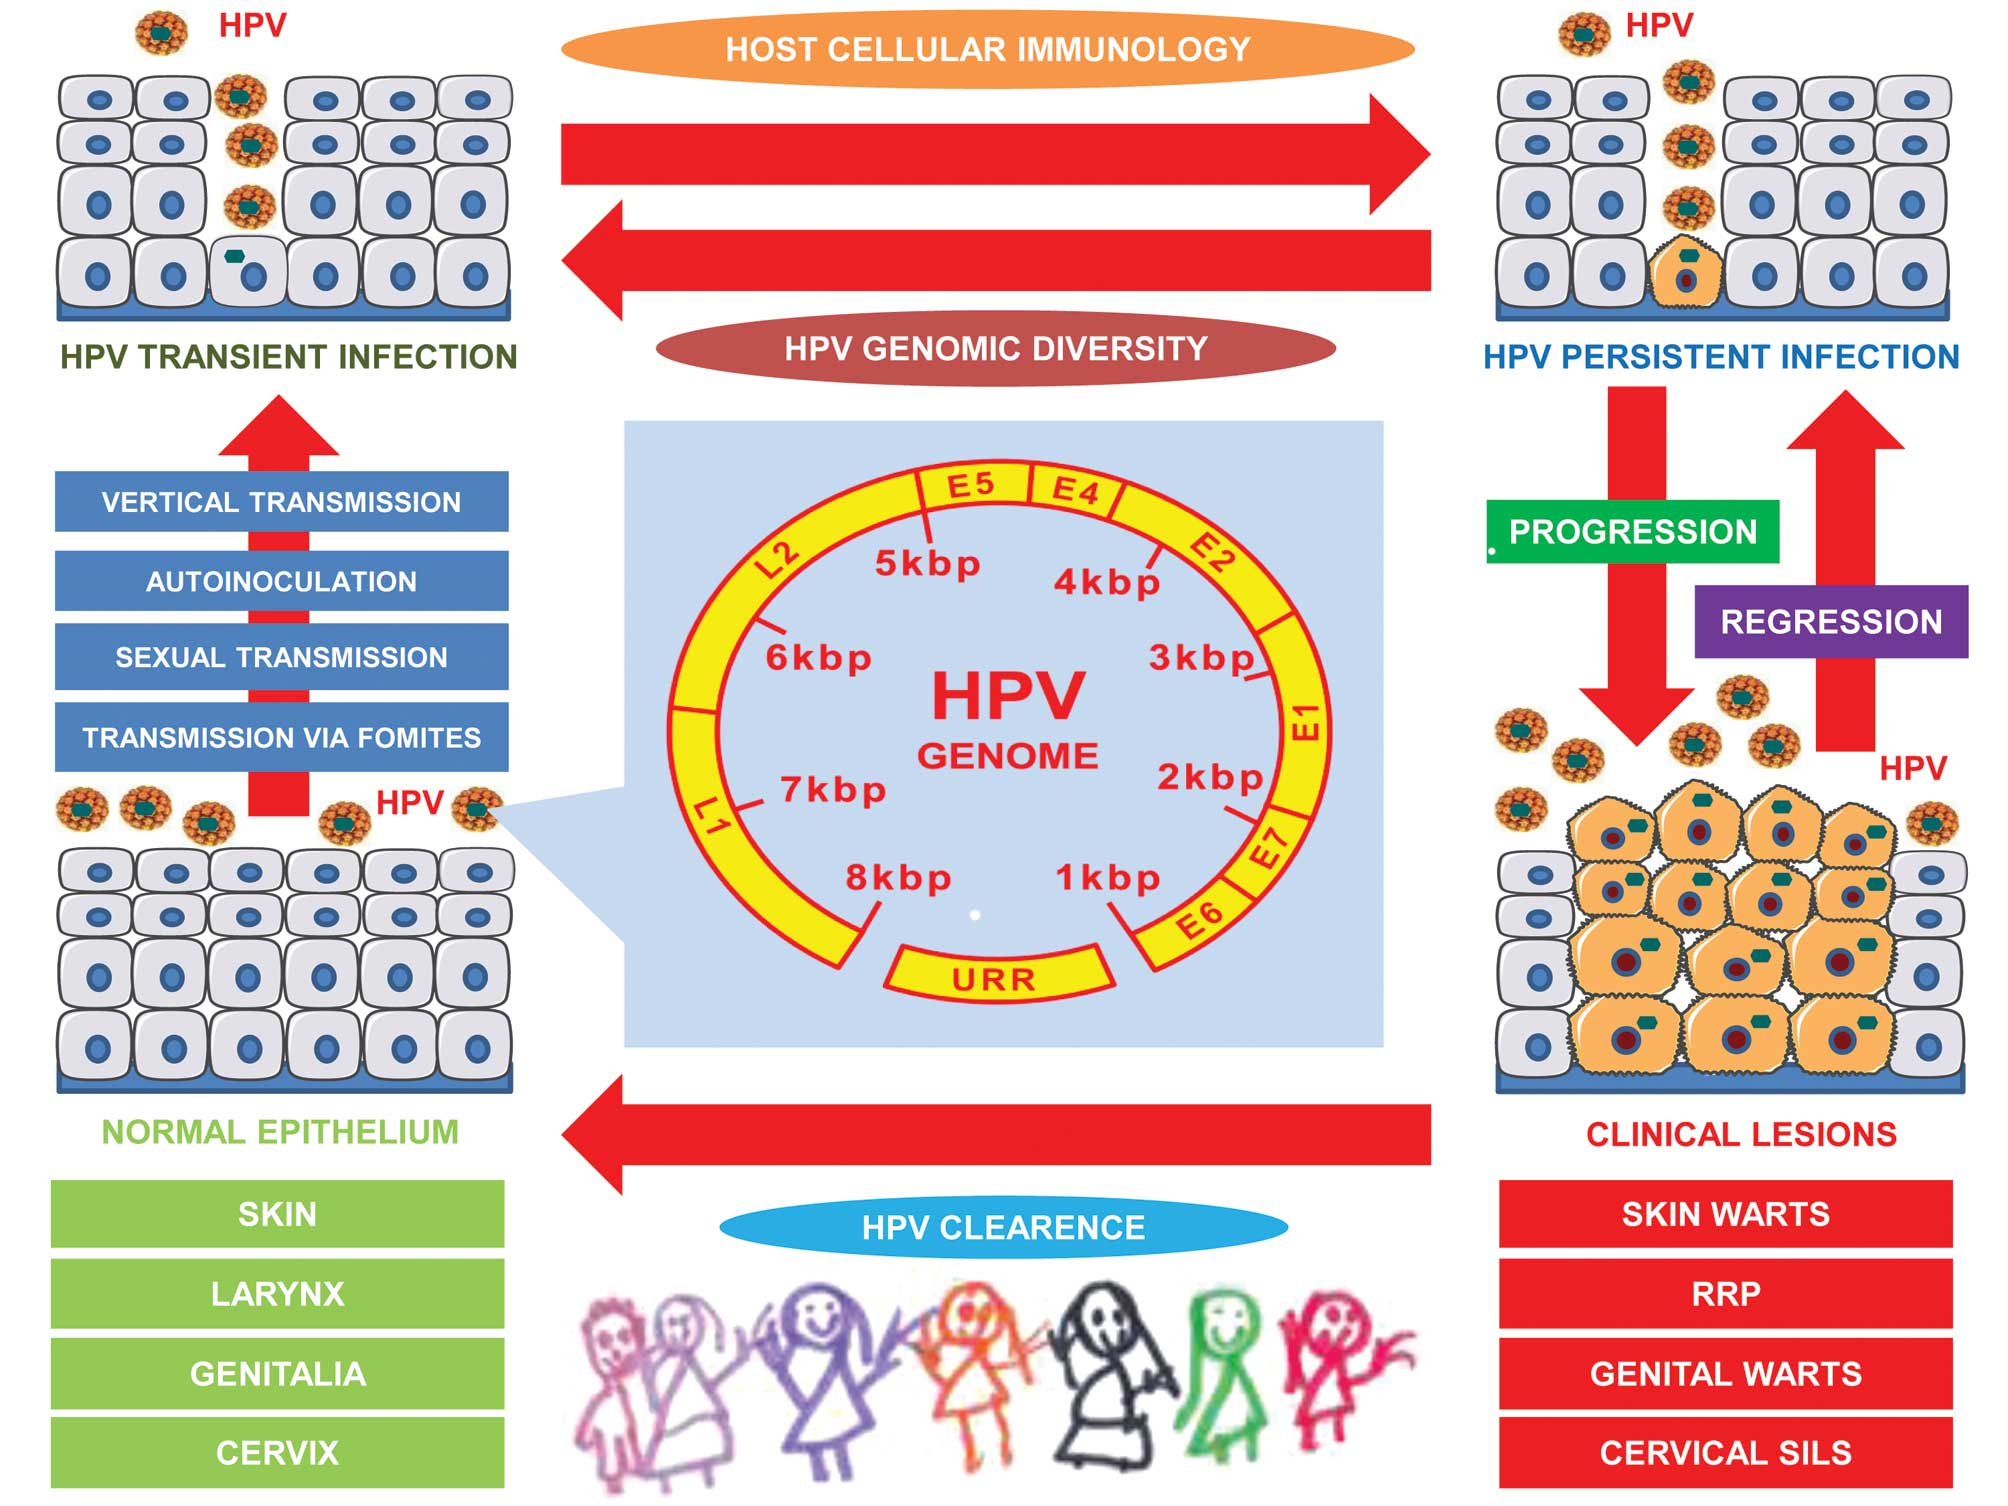 hpv high risk c 02 positive